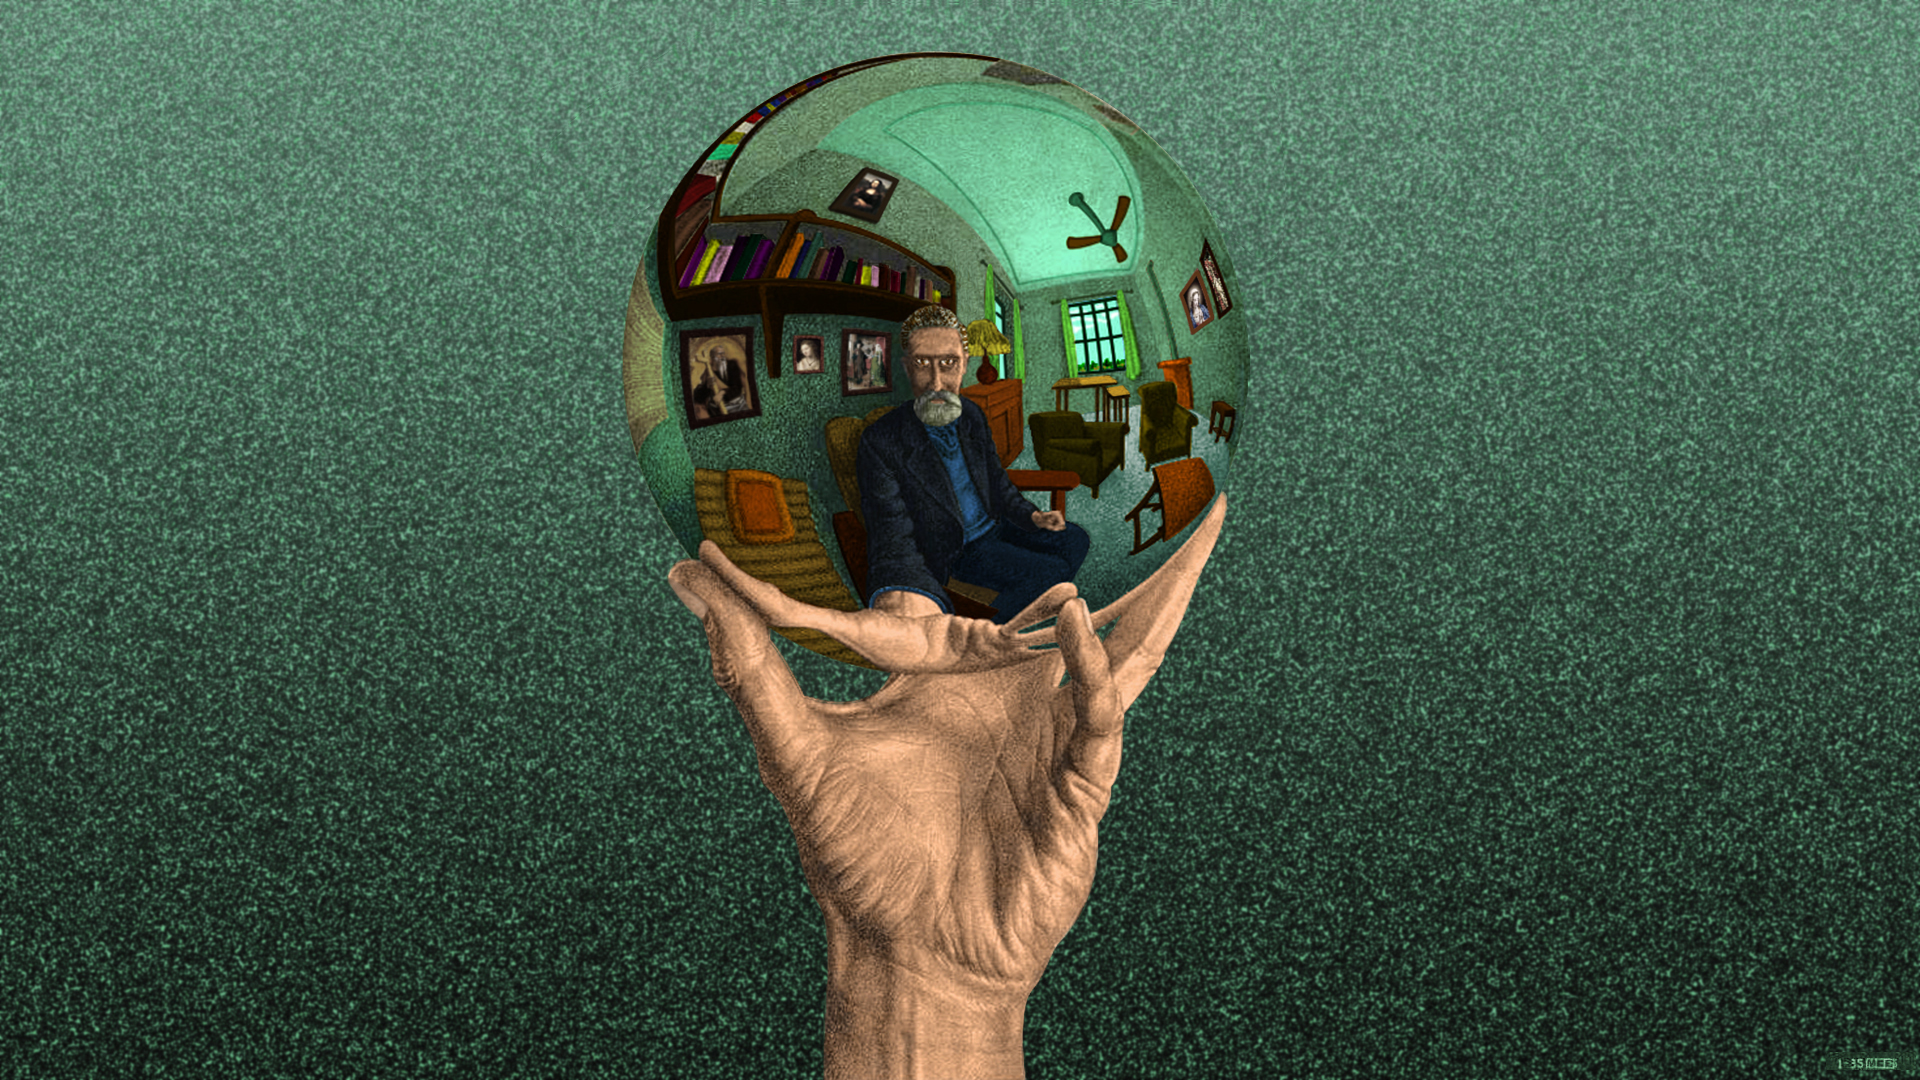 ''Hand with Reflecting Sphere''